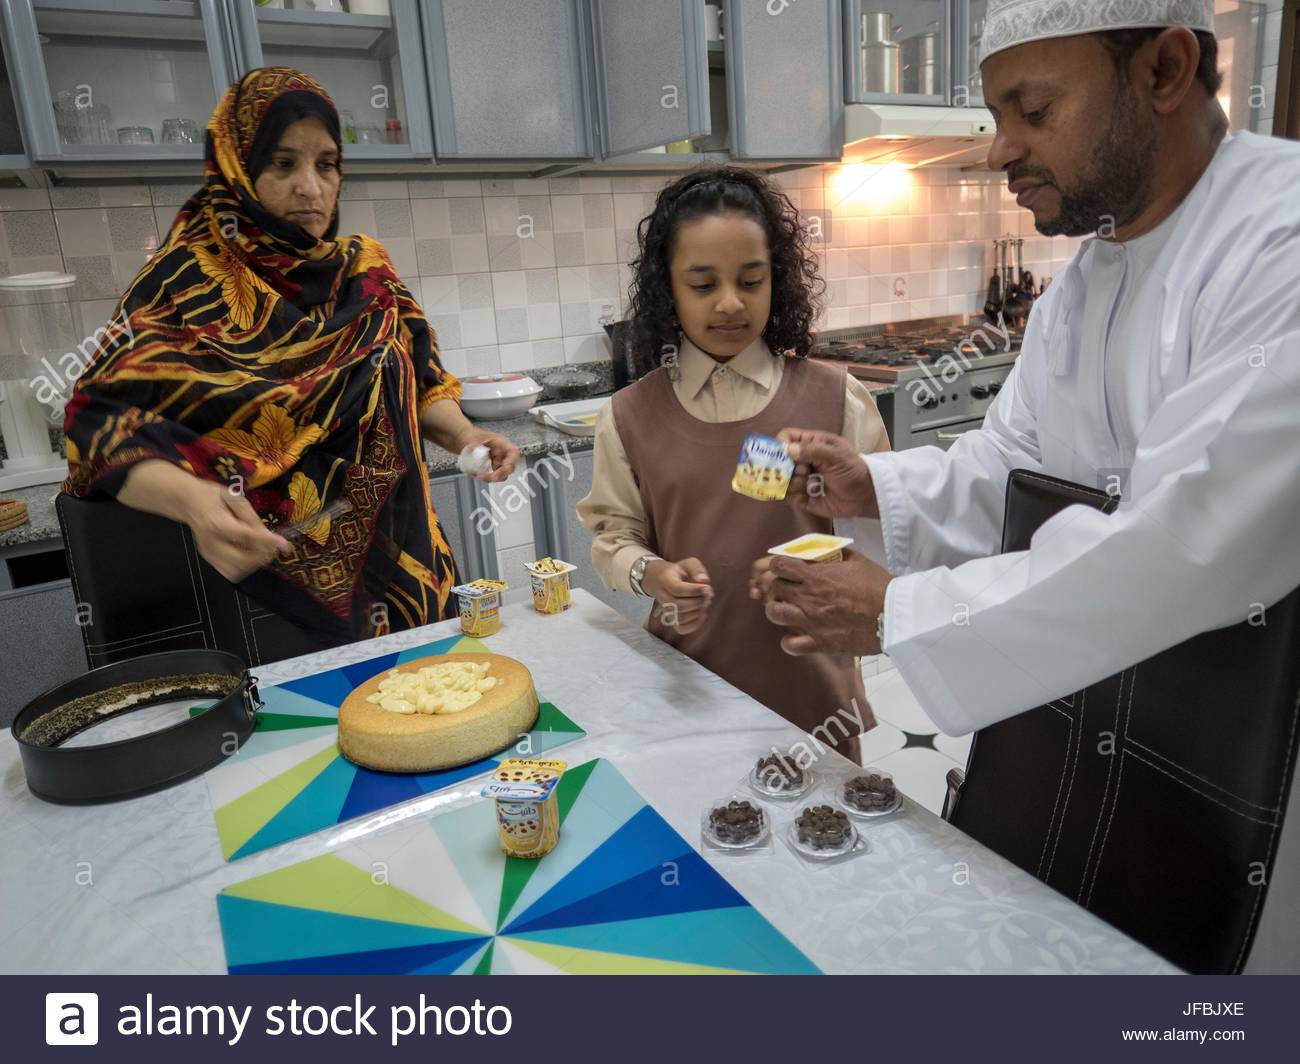 A 10 year old girl in the kitchen with her parents. - Stock Image